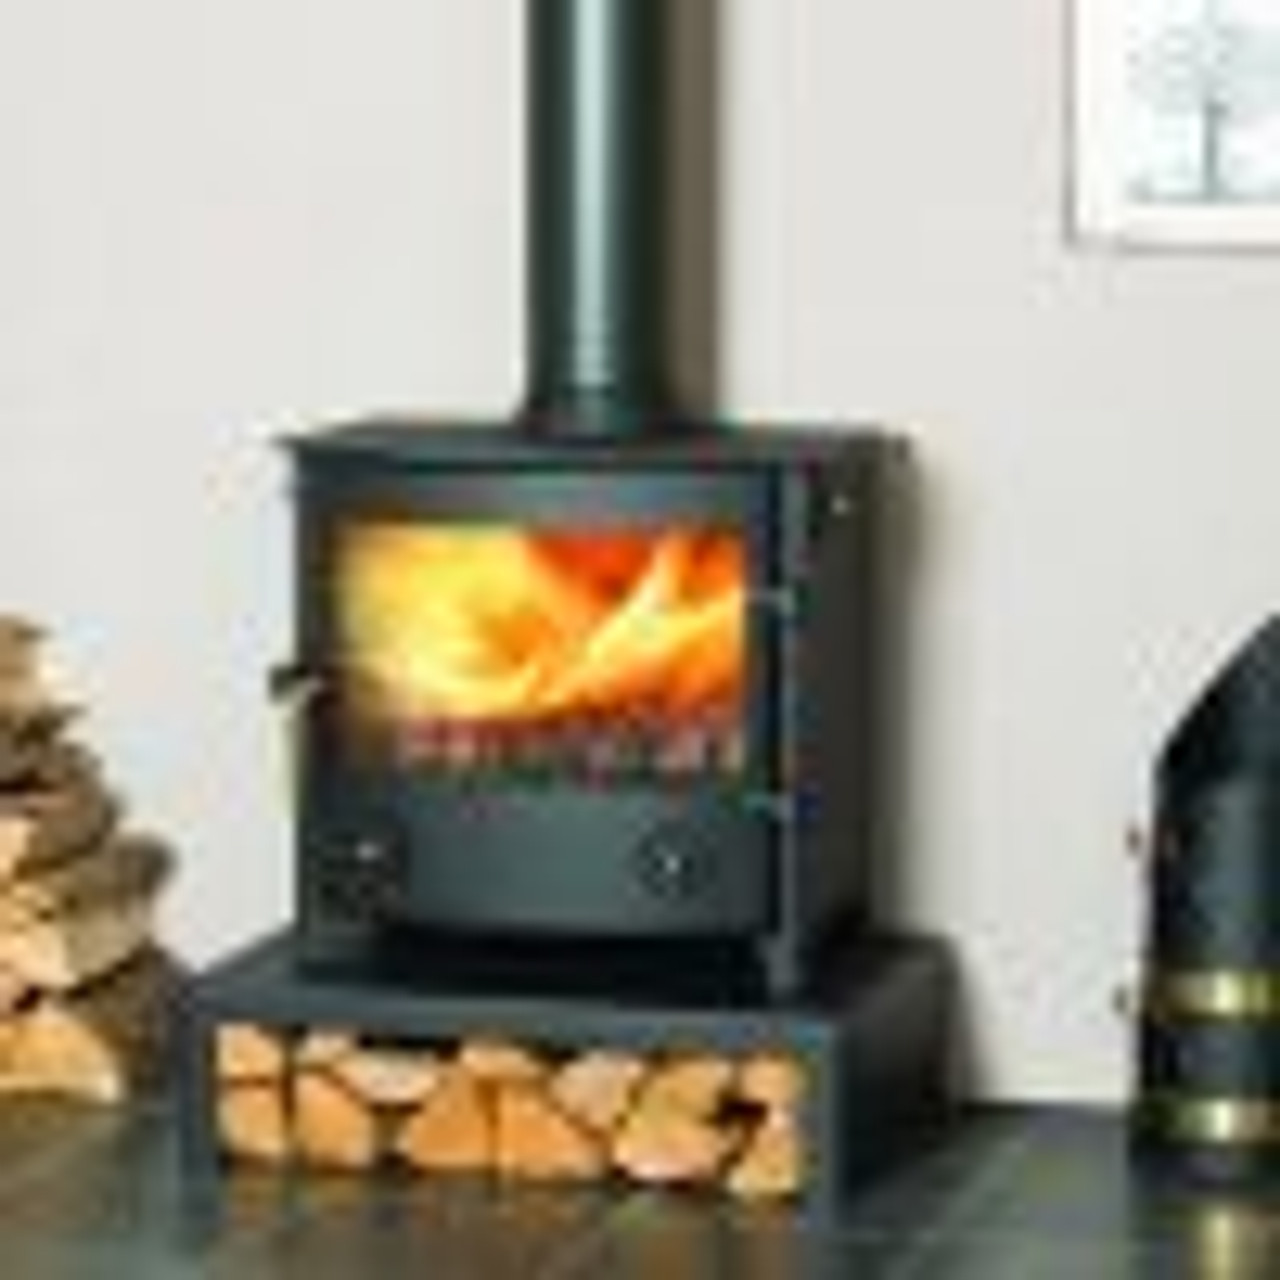 Town & Country Thornton Dale 7.5kw Stove